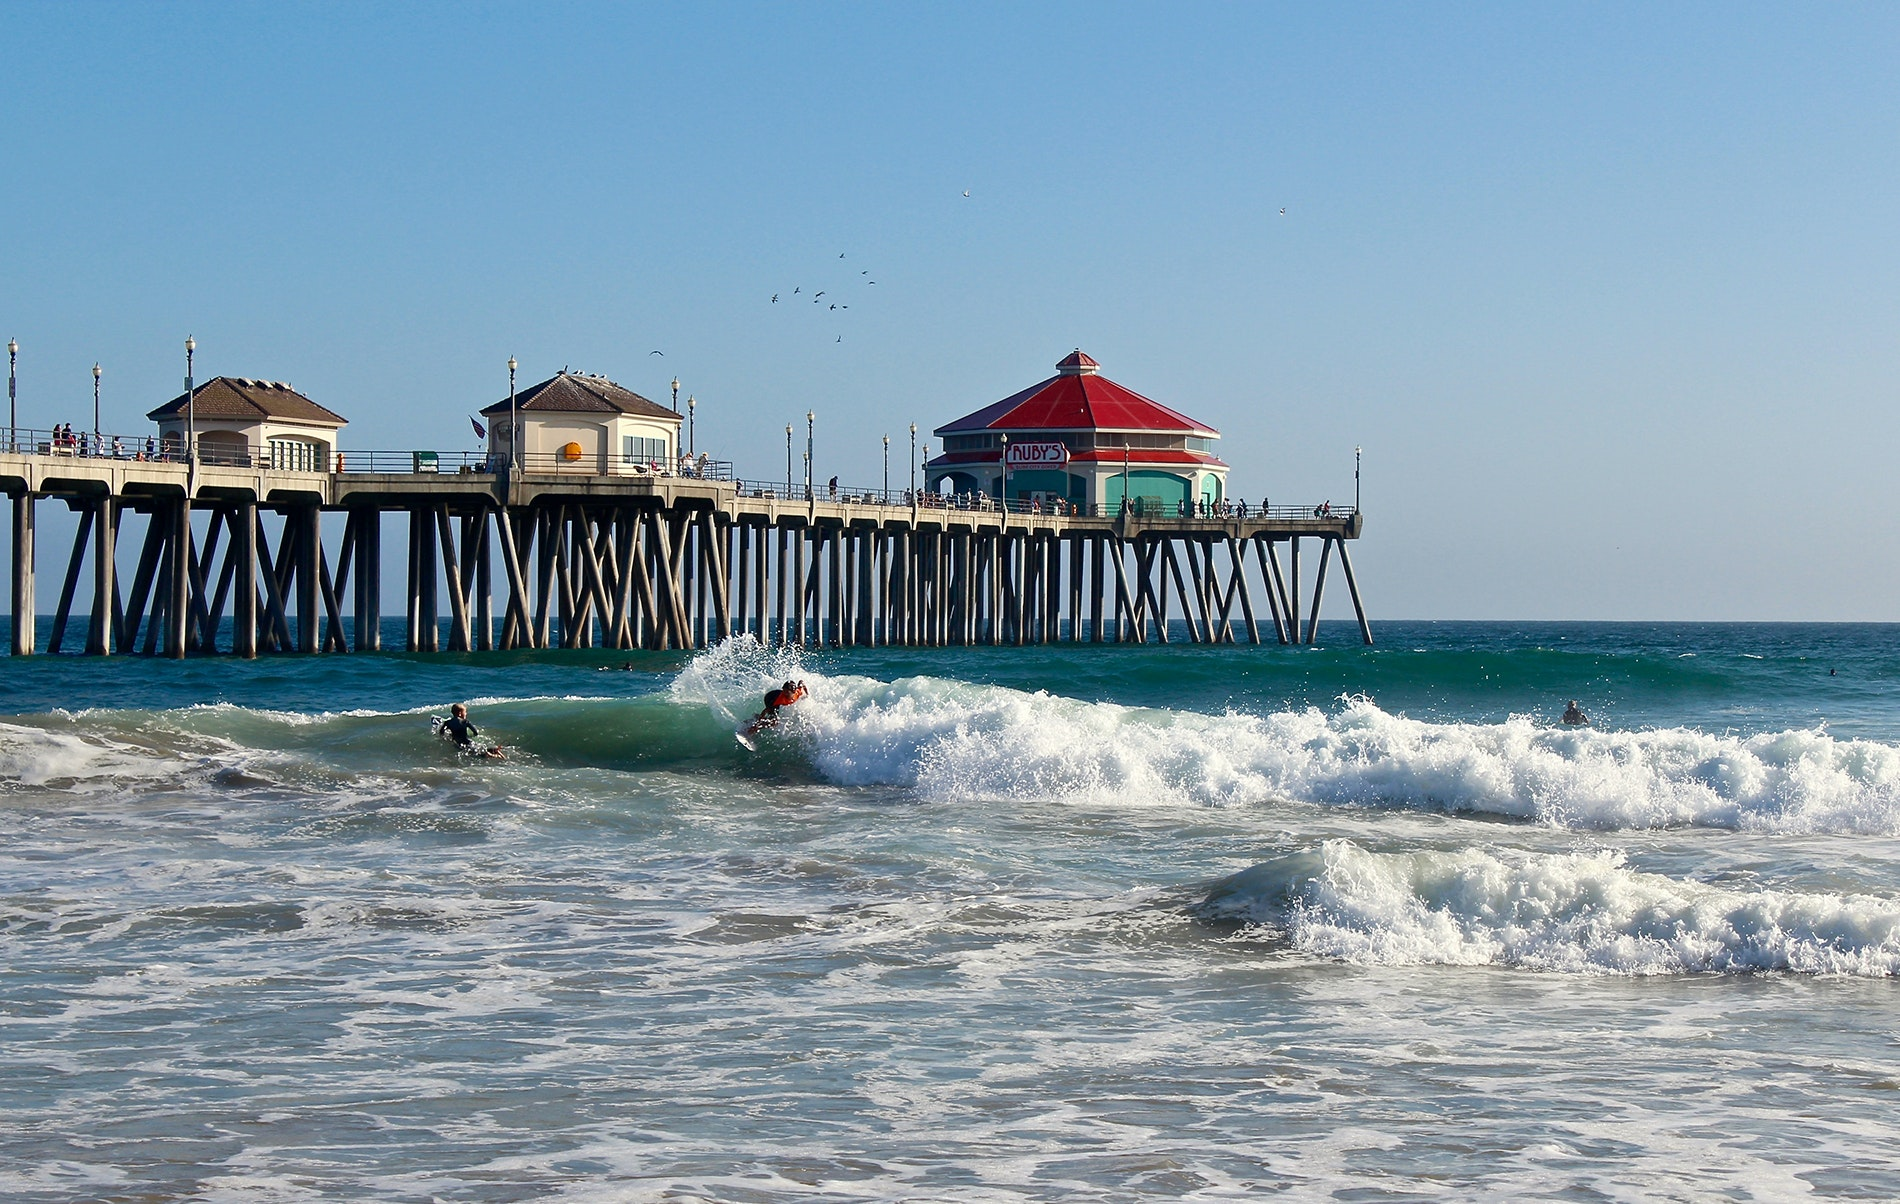 The city of Huntington Beach has five beaches to choose from.